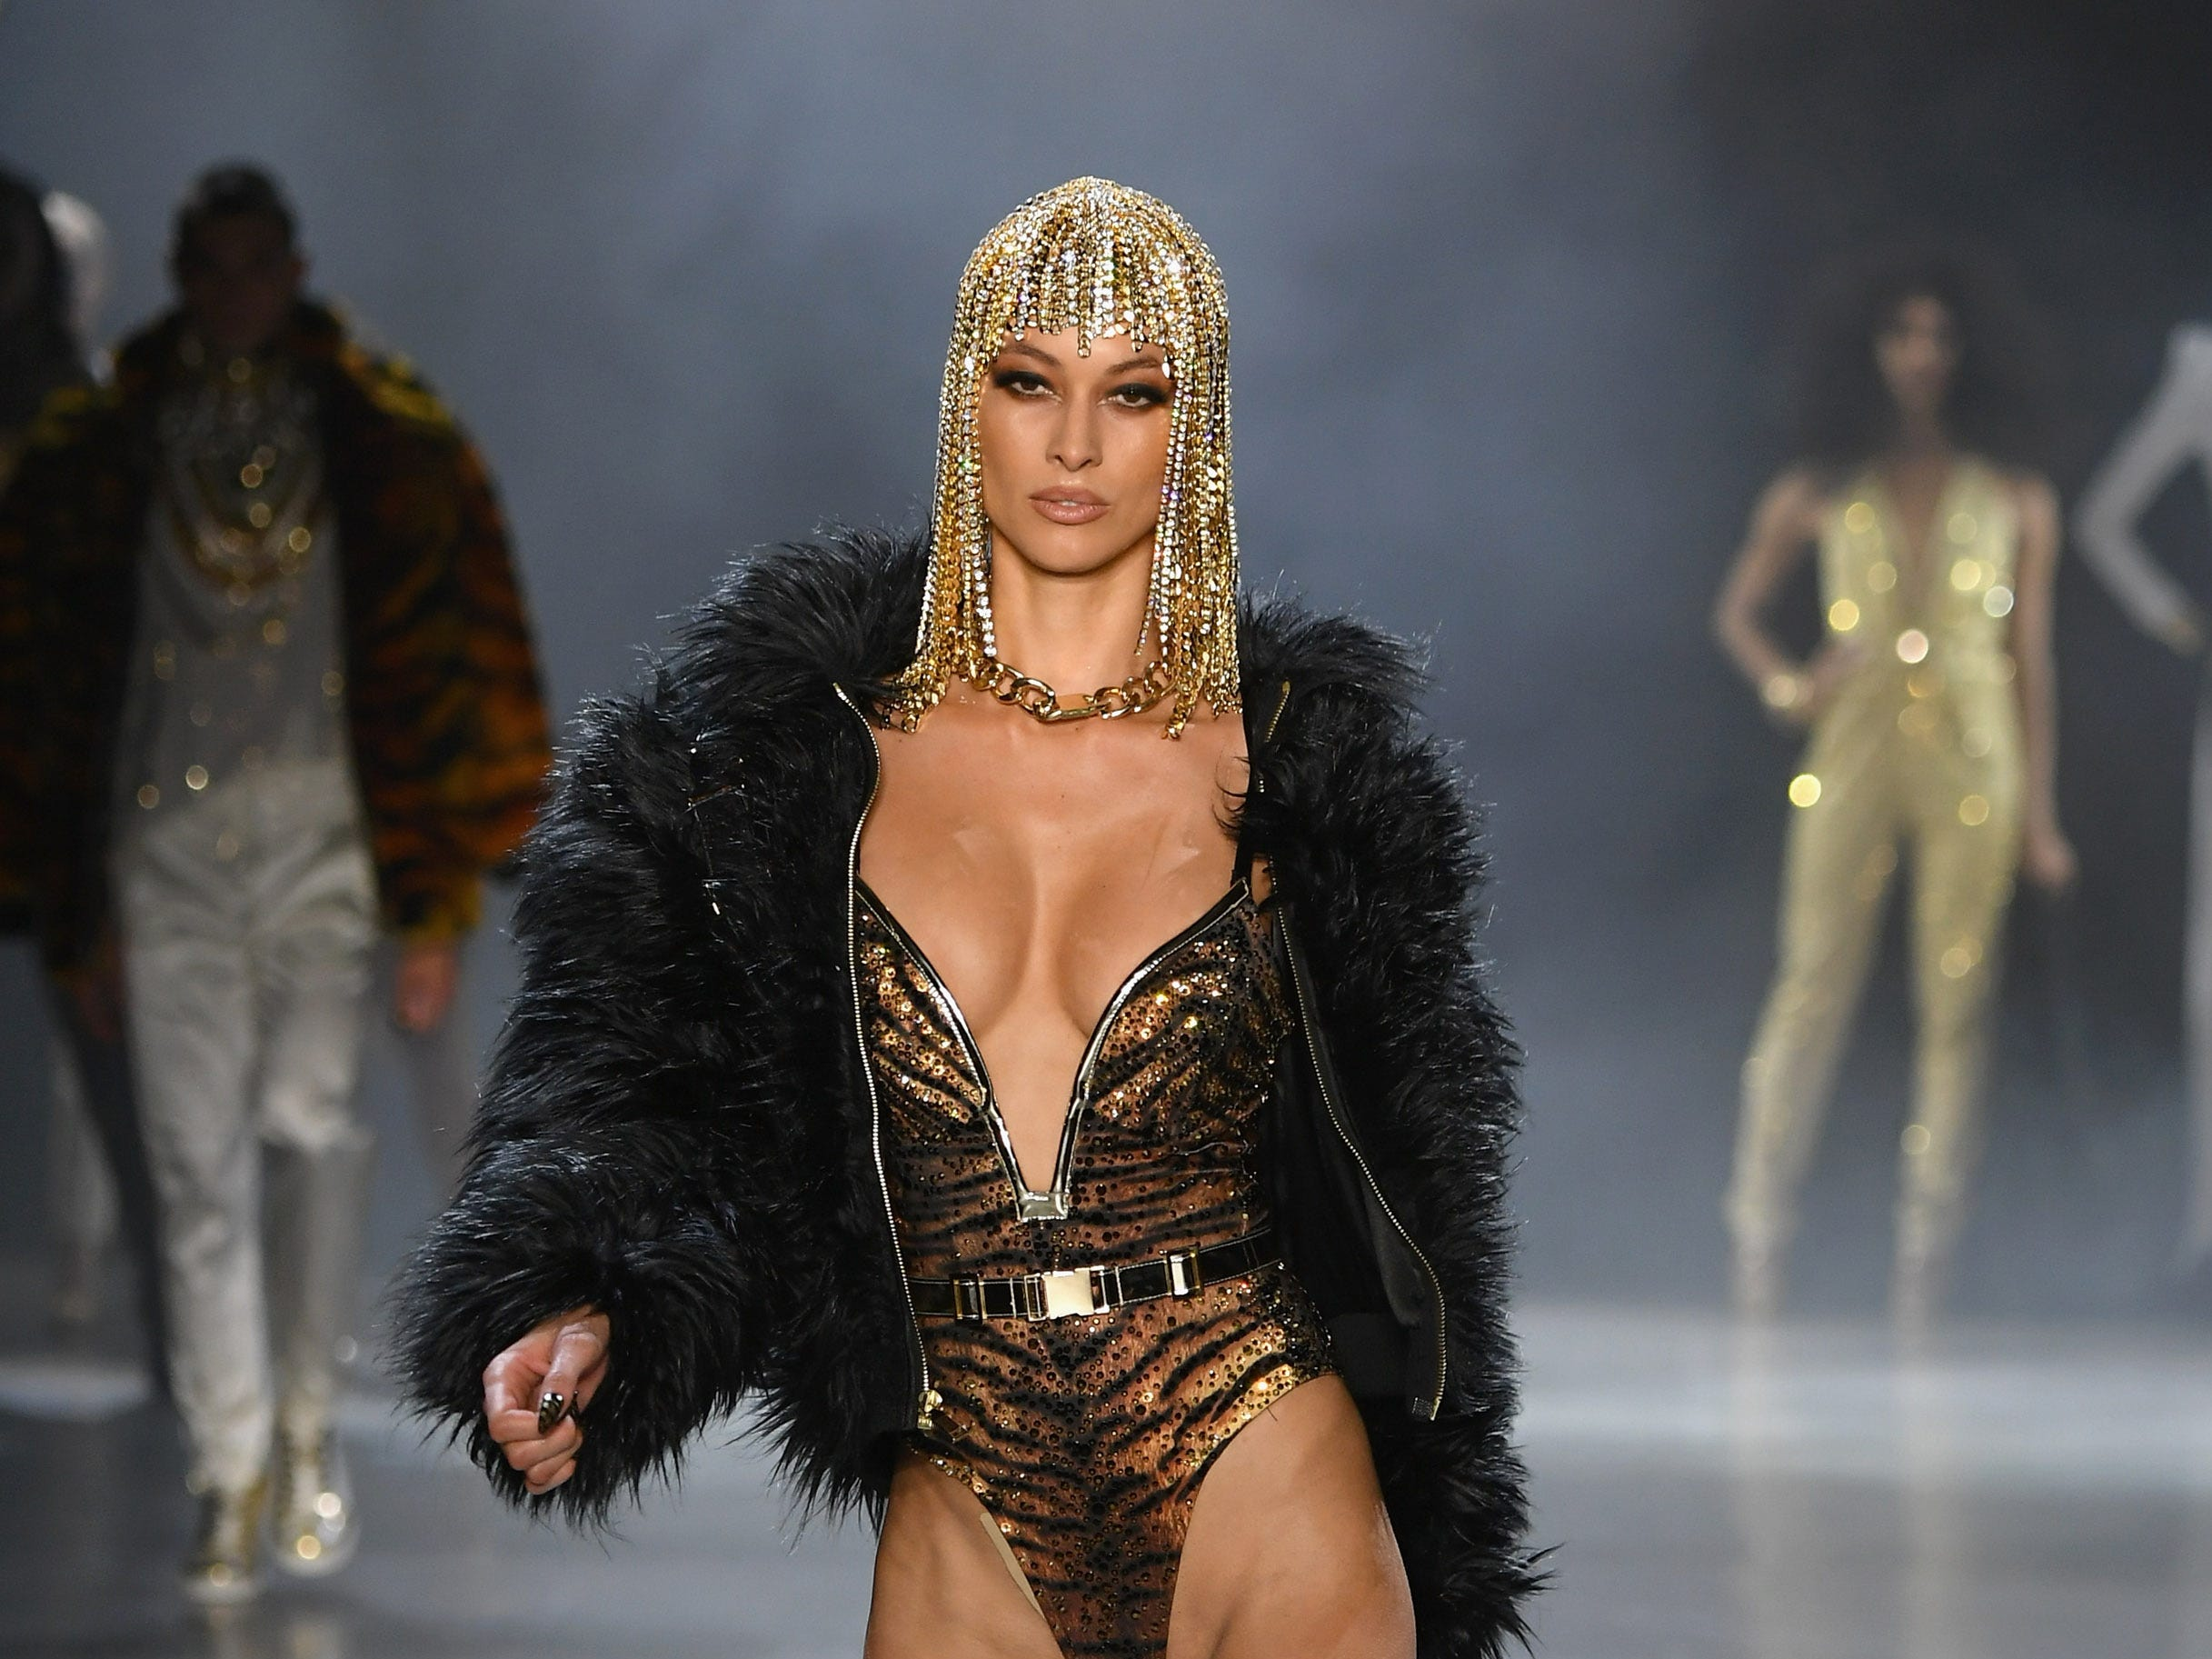 NEW YORK, NY - FEBRUARY 12:  A model walks the runway for The Blonds fashion show during New York Fashion Week: The Shows at Gallery I at Spring Studios on February 12, 2019 in New York City.  (Photo by Mike Coppola/Getty Images for NYFW: The Shows) ORG XMIT: 775290988 ORIG FILE ID: 1124523177